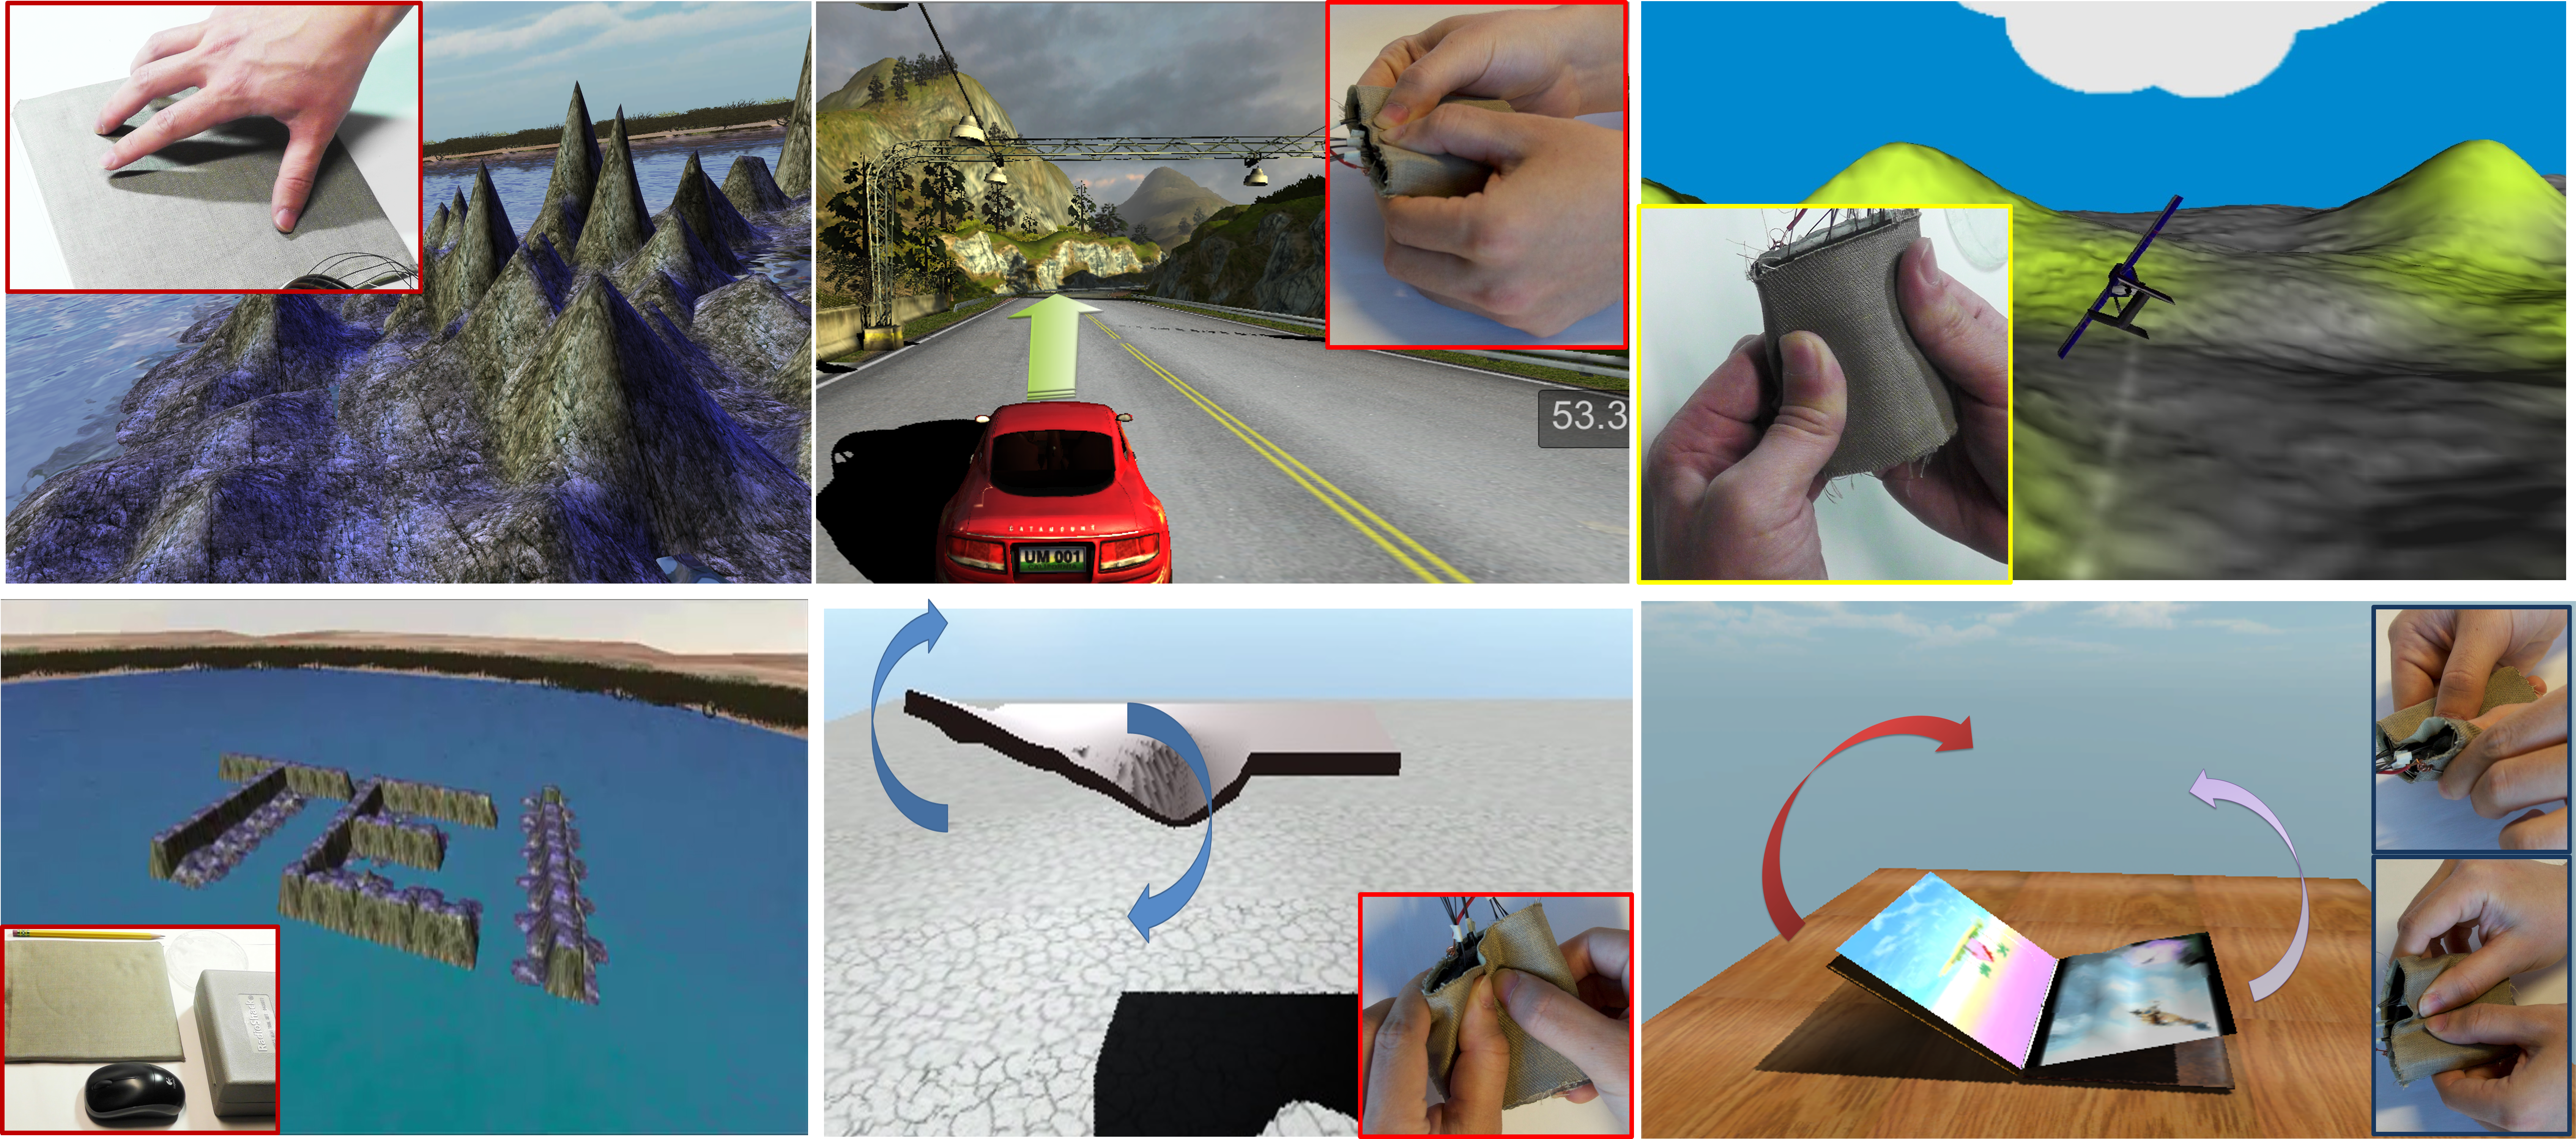 SOFTii: Soft Tangible Interface for Continuous Control of Virtual Objects with Pressure-based Input